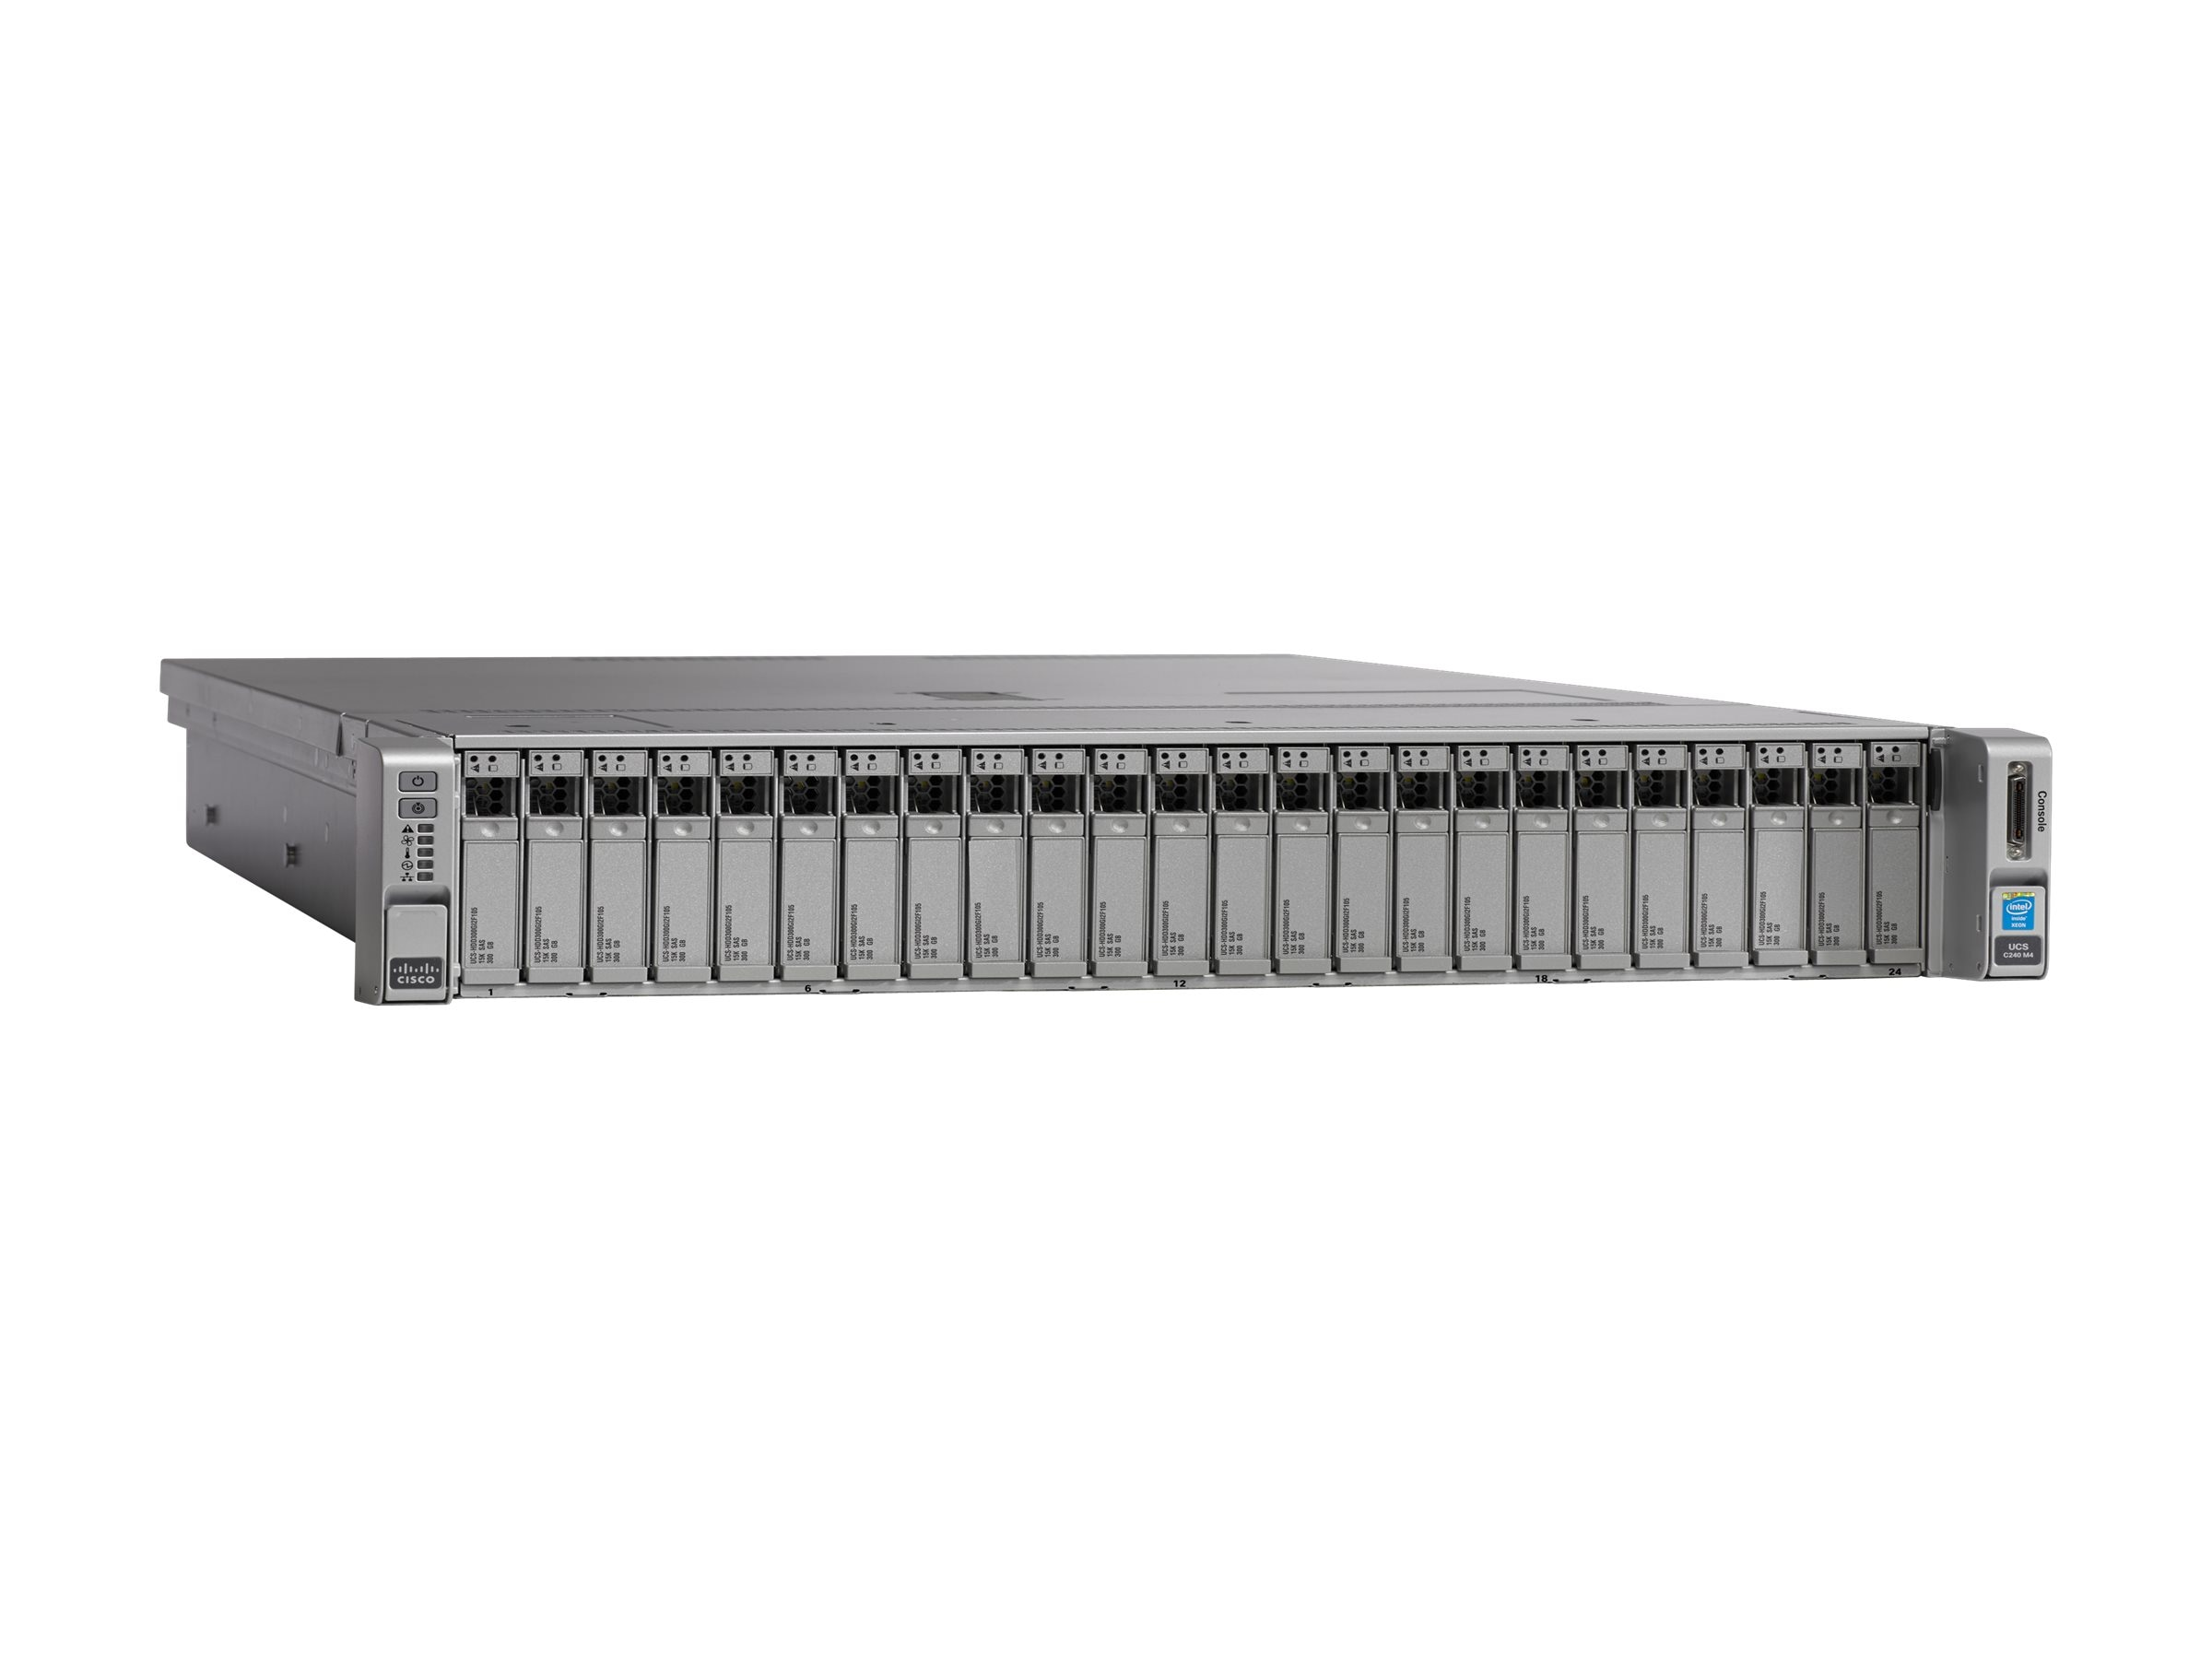 Cisco UCS-SP-C240M4-F1 Image 5